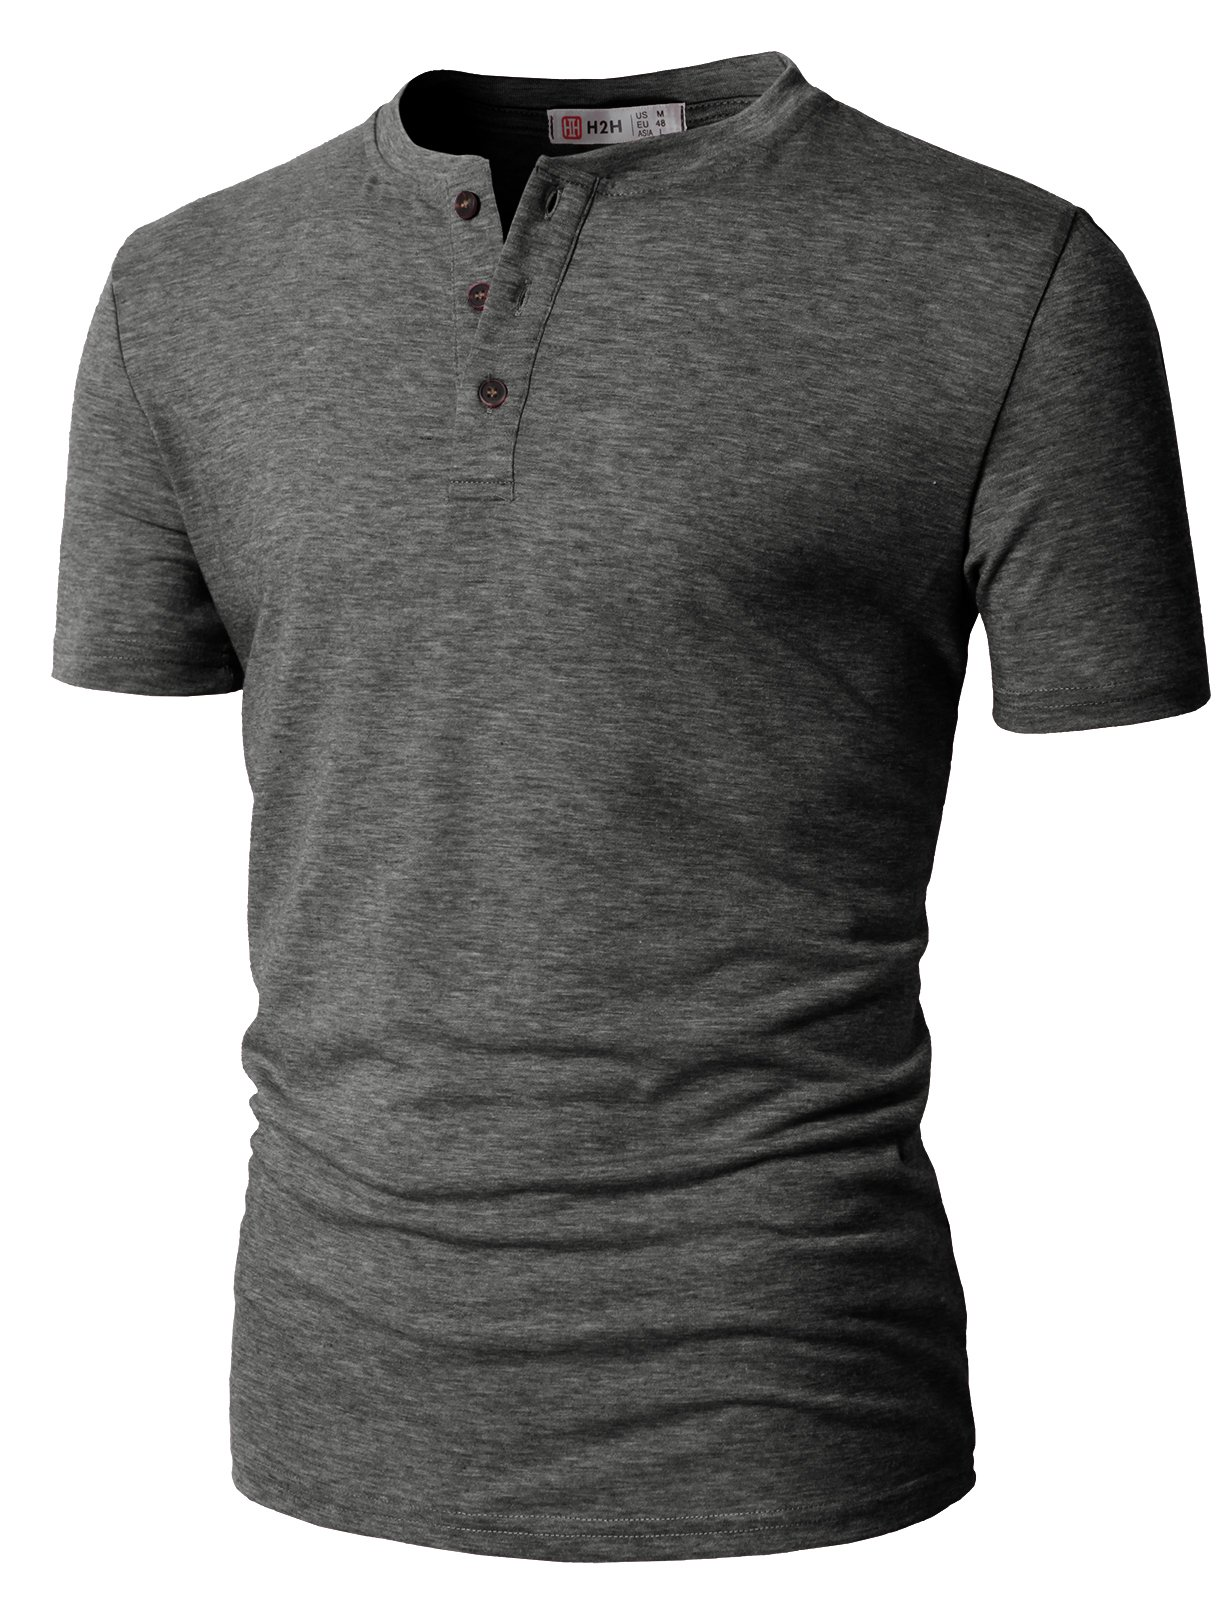 H2H Men's Short Sleeve Henley Tee Shirt (Regular and Big and Tall Sizes included) Charcoal US M/Asia L (CMTTS0203)